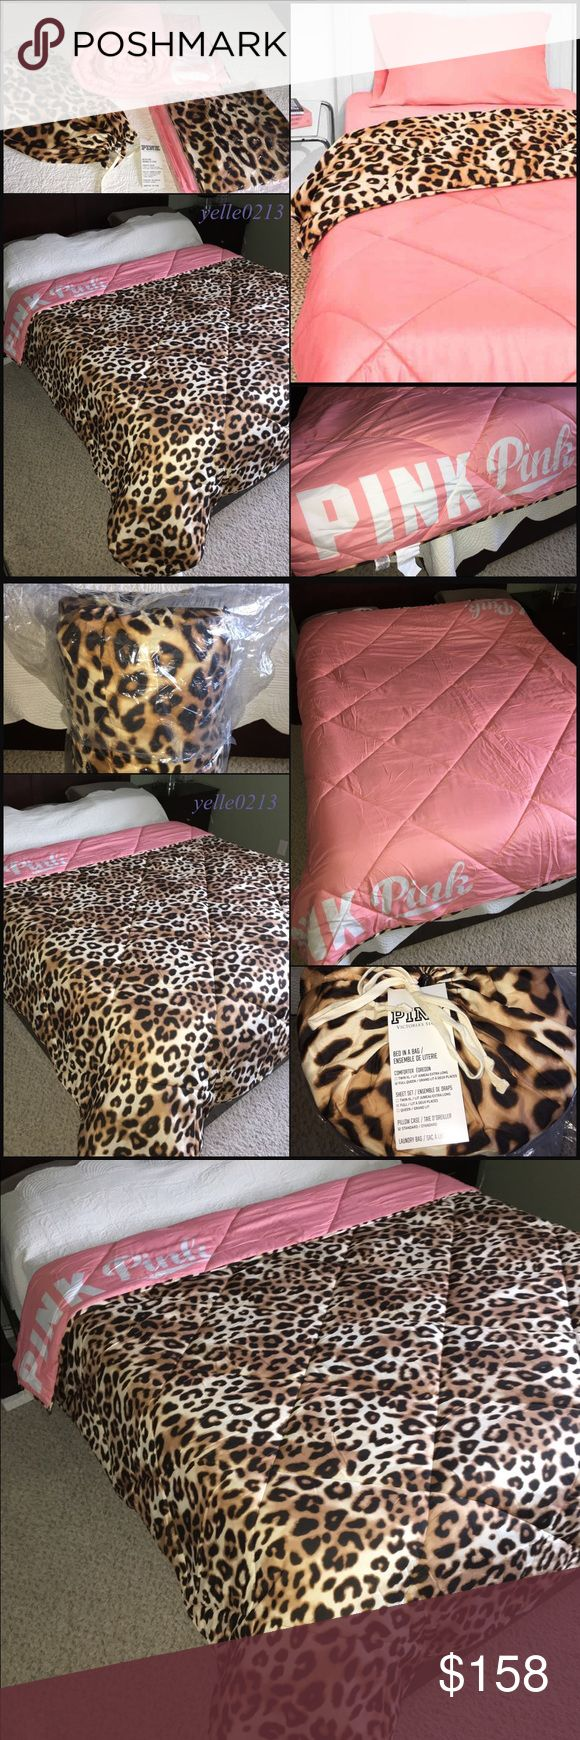 Vs pink bedding sets - Salenew Vs Pink Bed In A Bag F Q Nwt Vs Pink Bed In A Bag Set Size Full Queen Leopard Hot Pink Colorblock Includes 1 Fitted Sheet 1 Bed Sheet 2